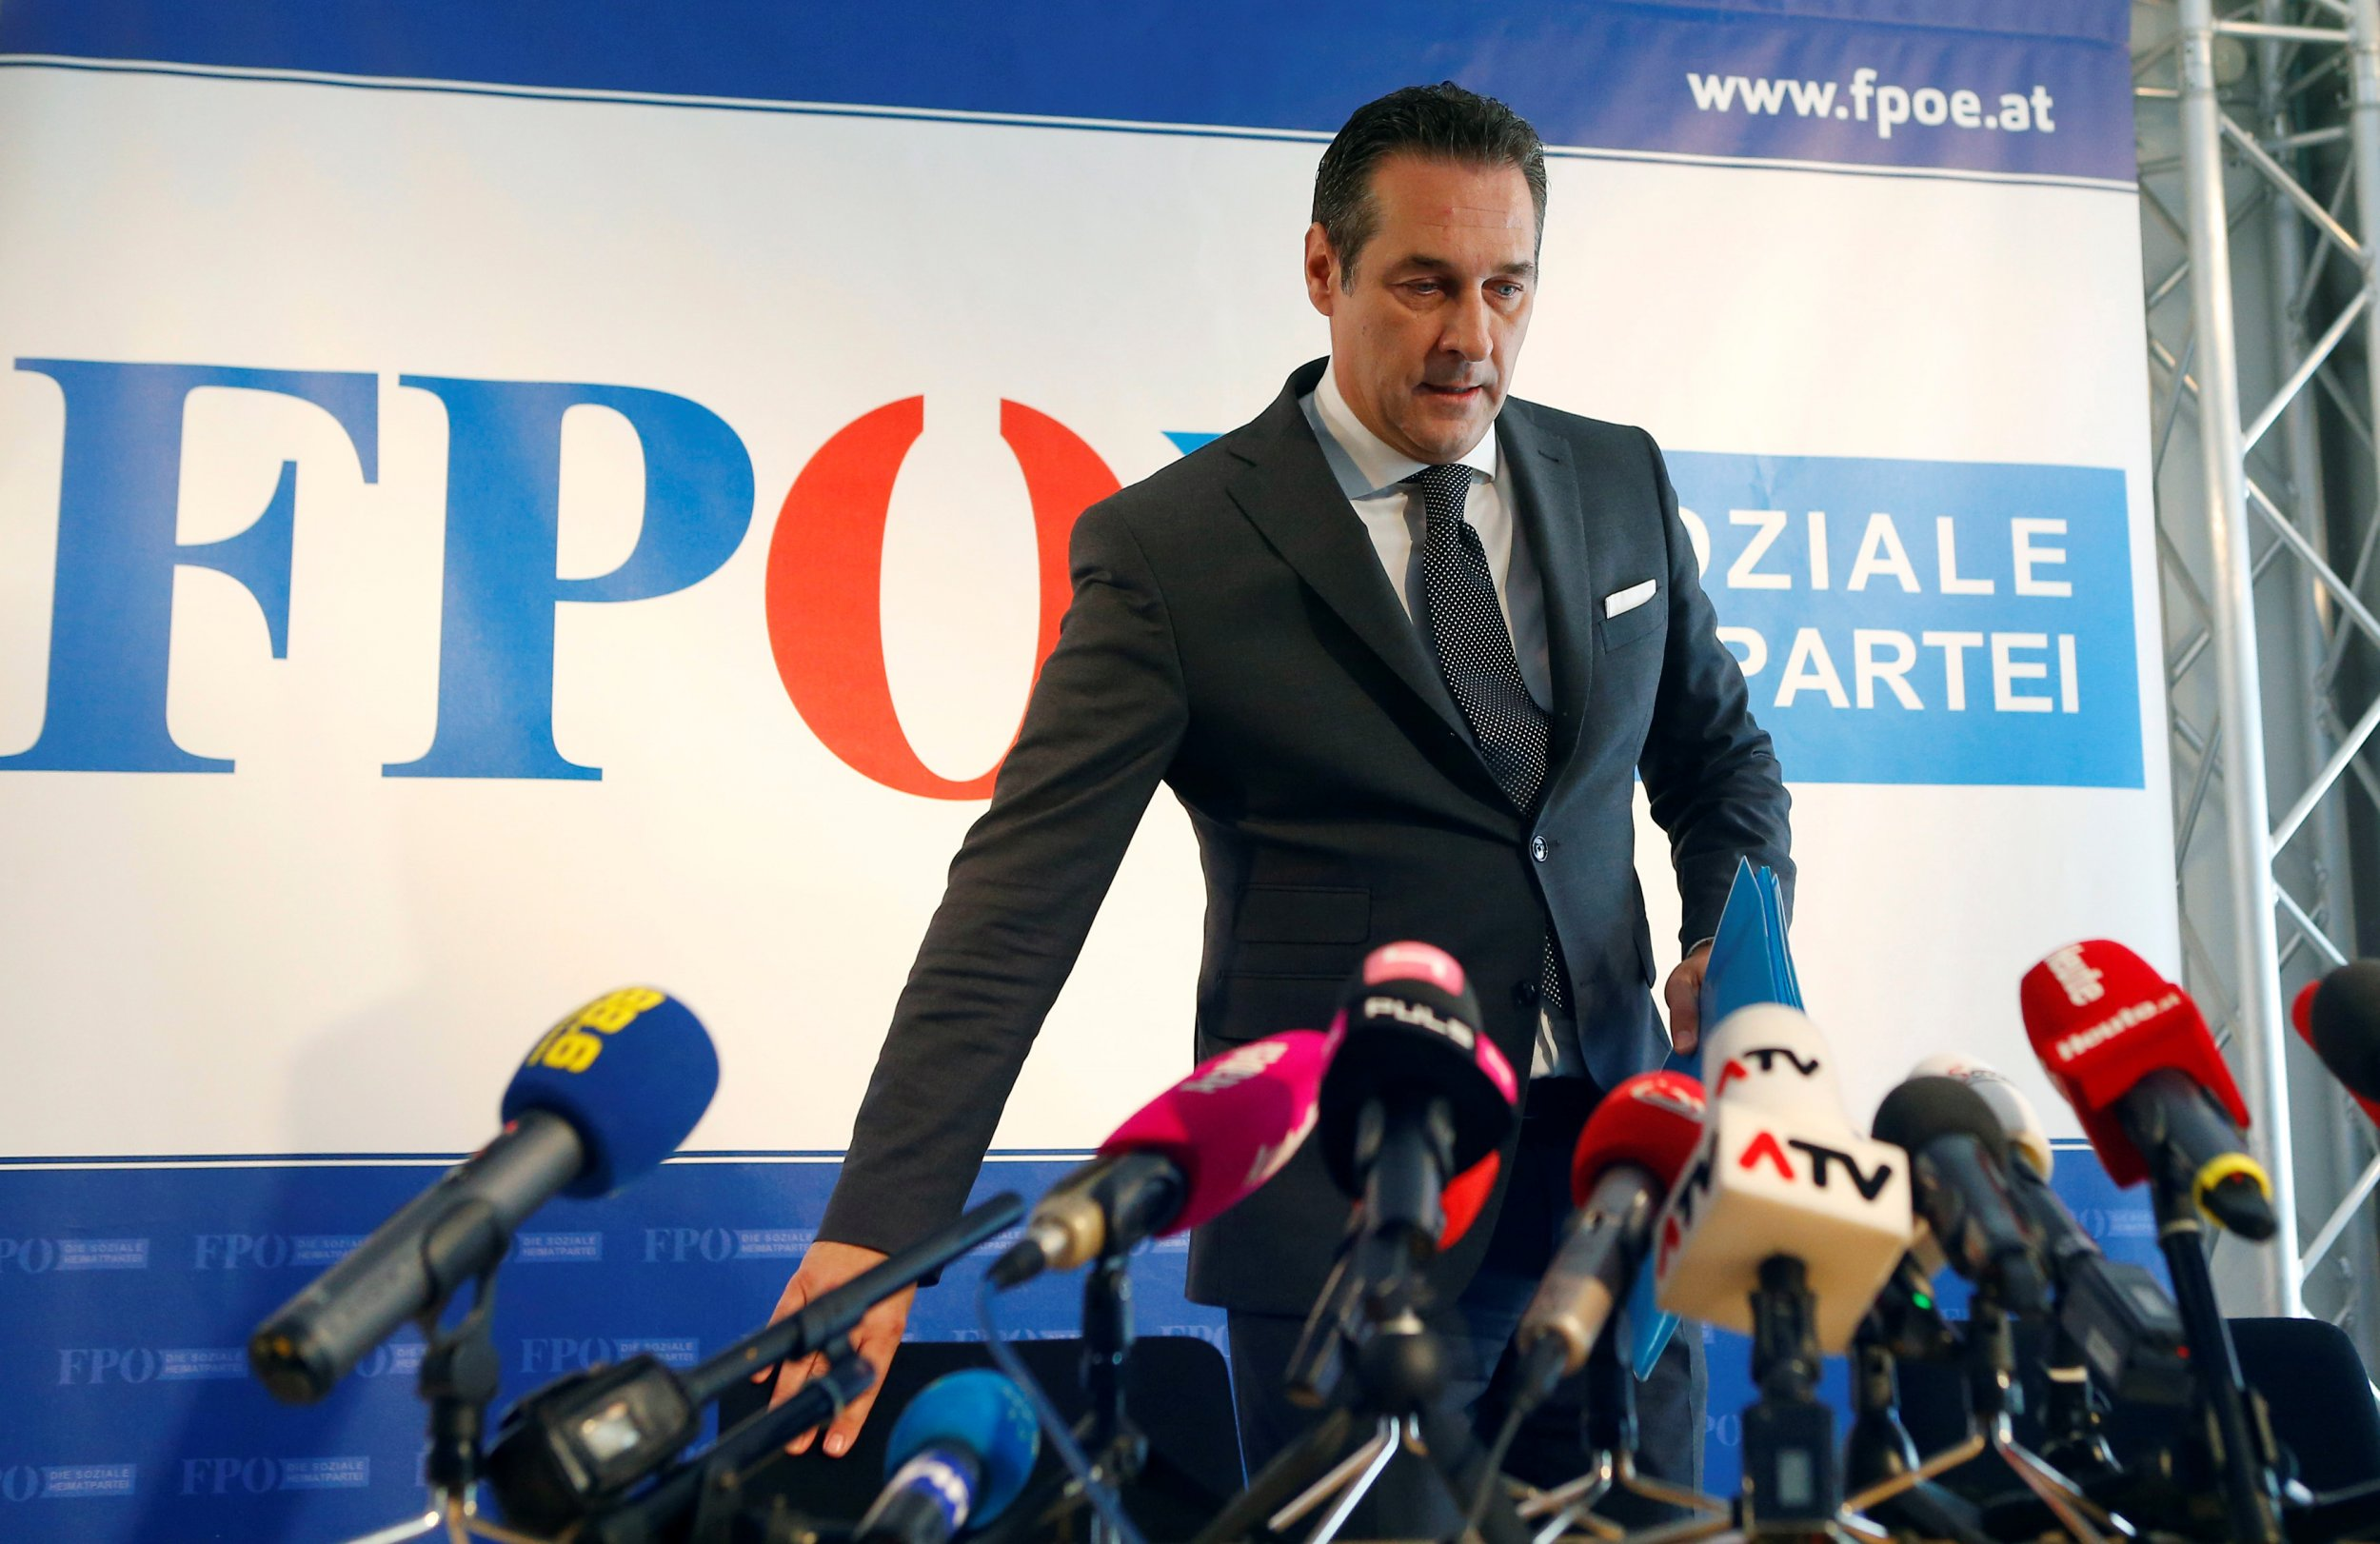 Austria's Far-Right to Contest Election Result